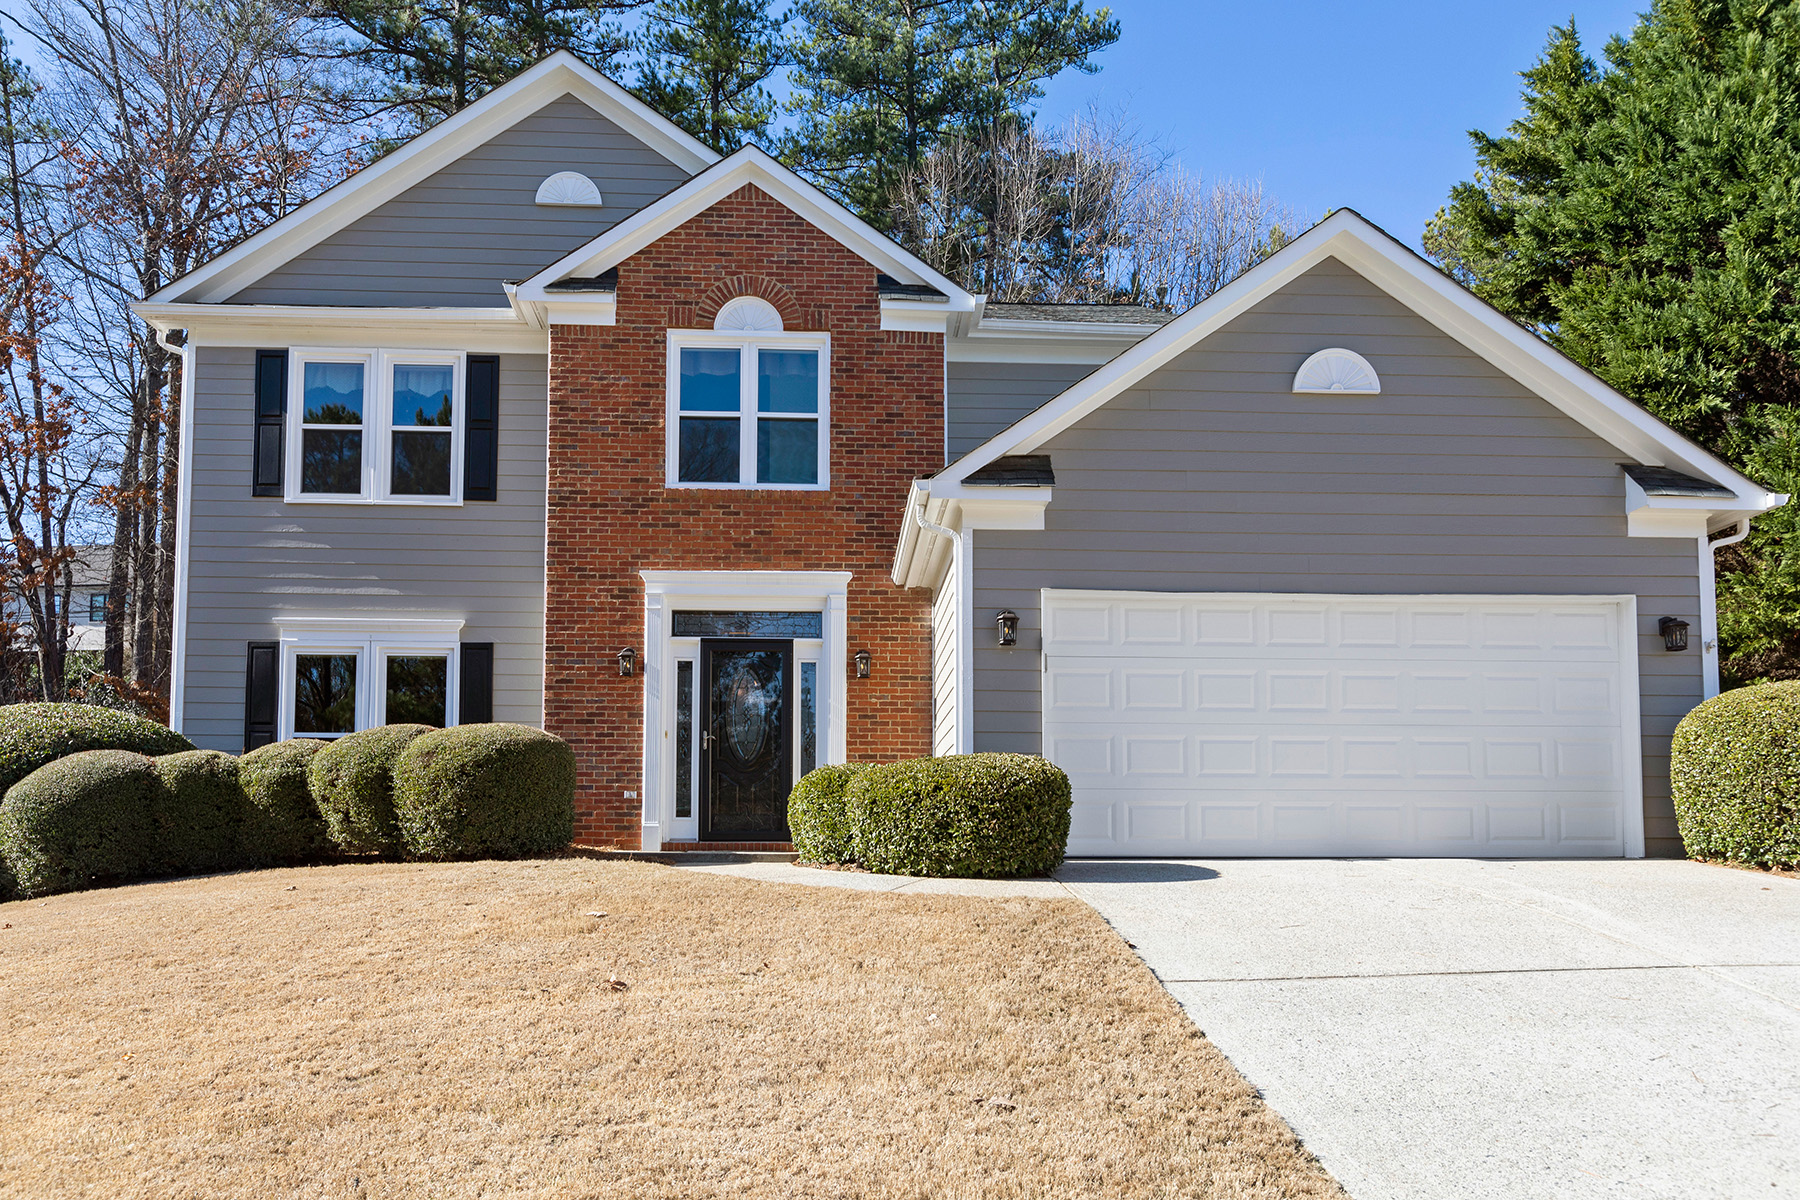 Single Family Homes for Active at Immaculate, Move In Ready With $70K In Upgrades In Peachtree Corners 3617 Dunlin Shore Court Peachtree Corners, Georgia 30092 United States